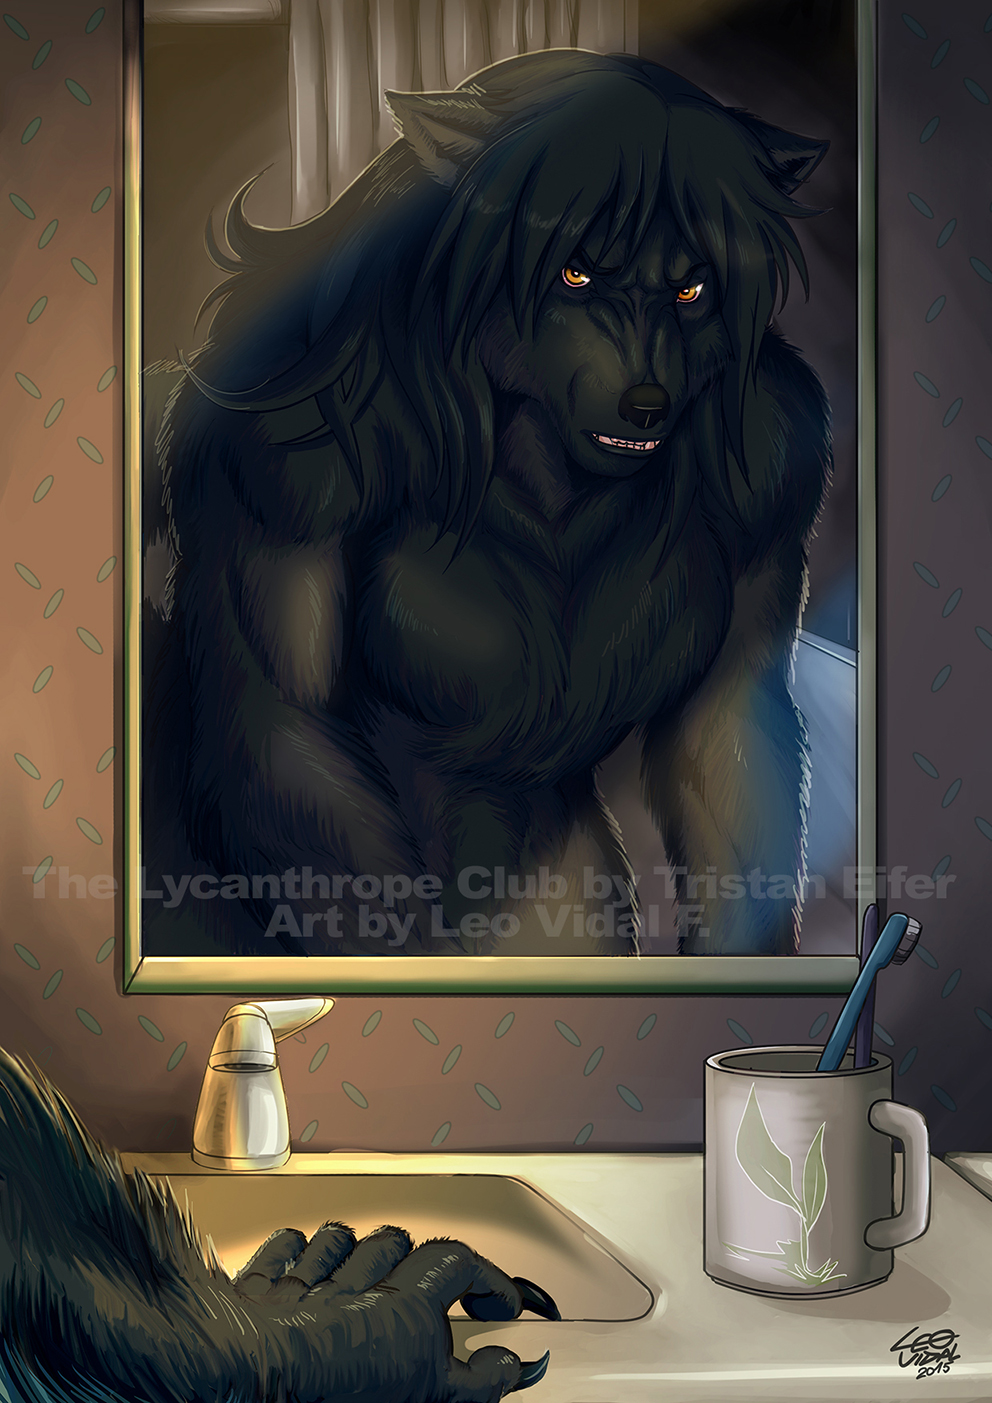 Night Time - The Lycanthrope C Book 2 Illustration by alfaluna